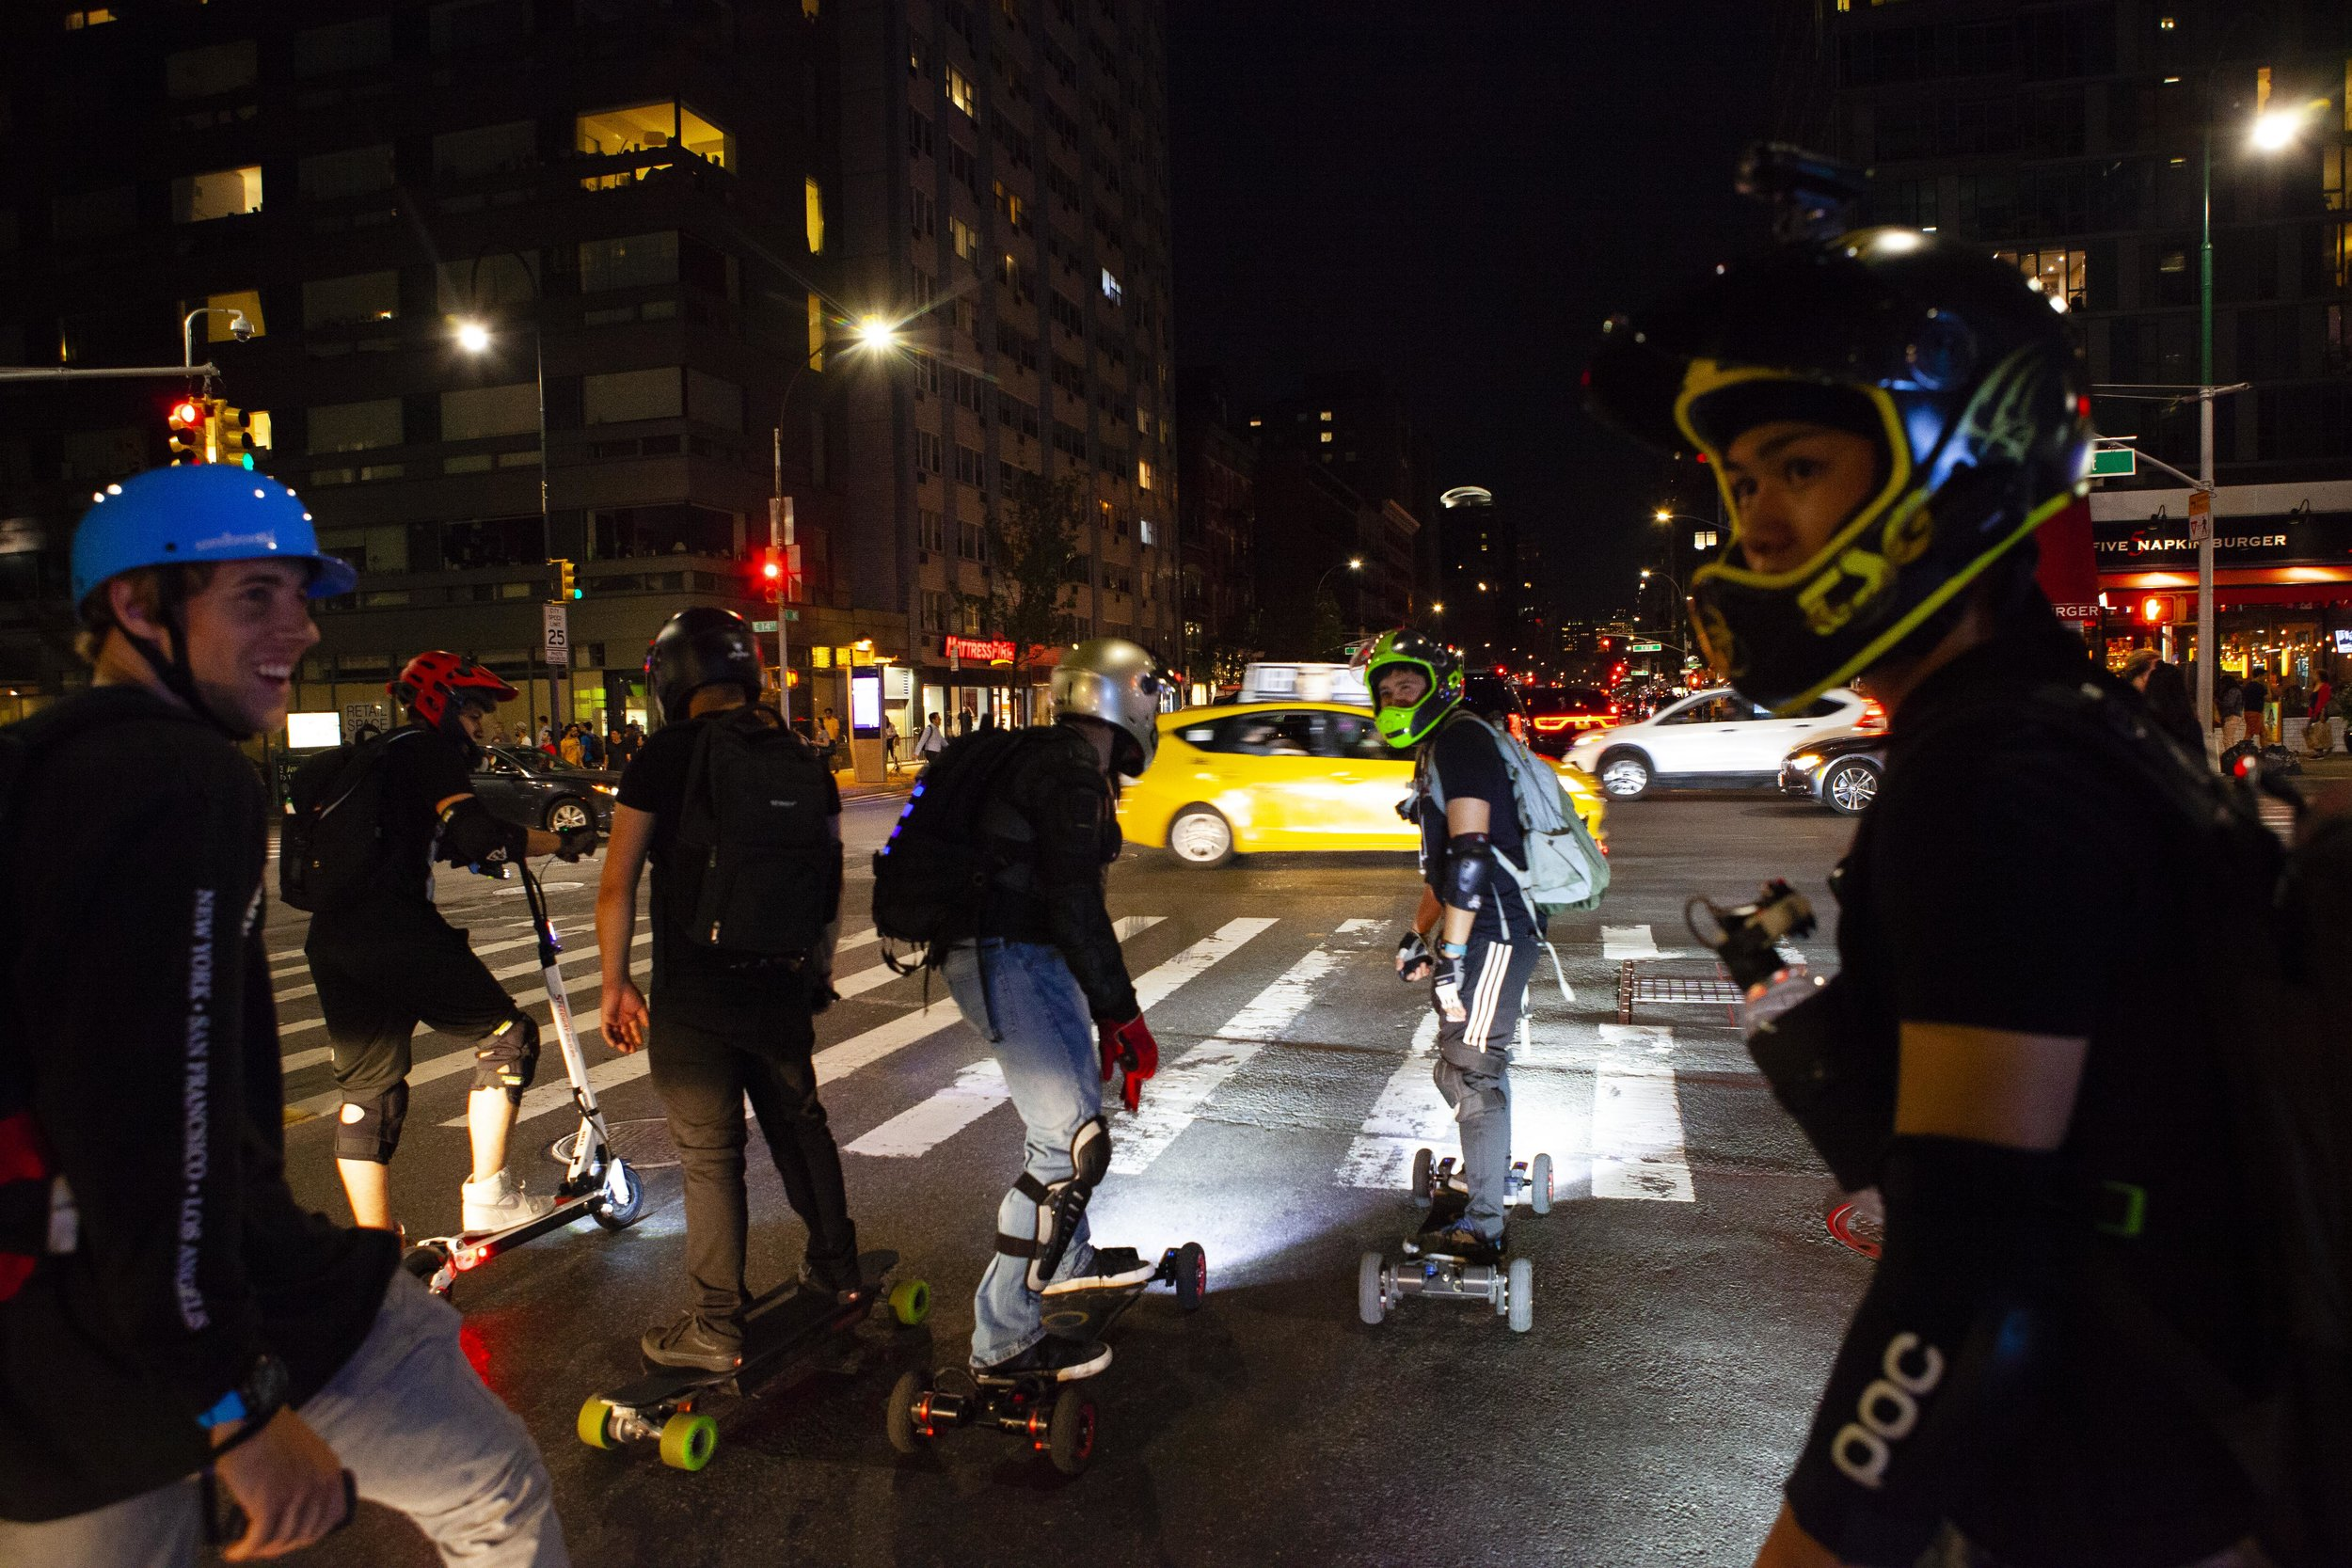 NYC_National_Skate_Day-66.jpg